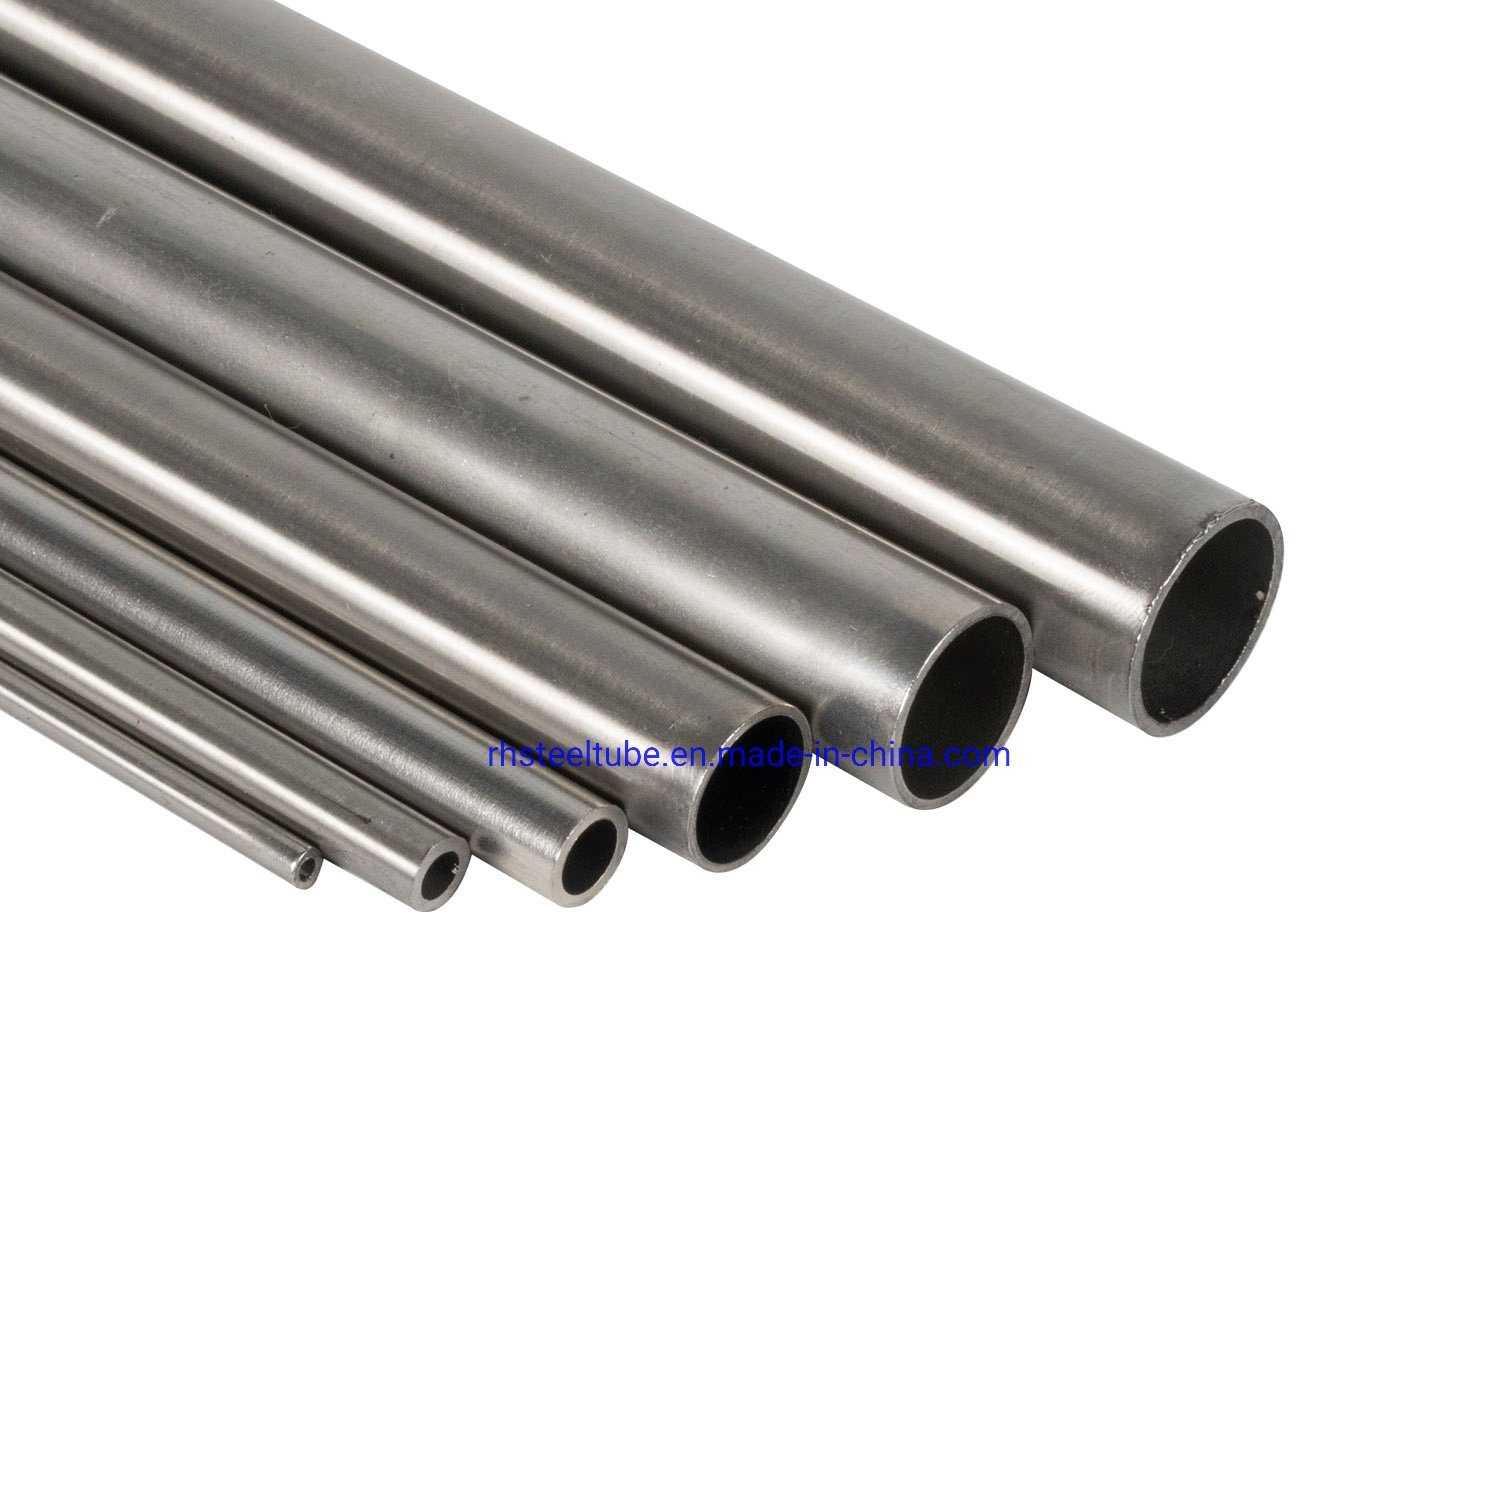 """0.065/"""" Wall 12/"""" Stainless Steel 316 Seamless Round Tubing 3//4/"""" OD"""